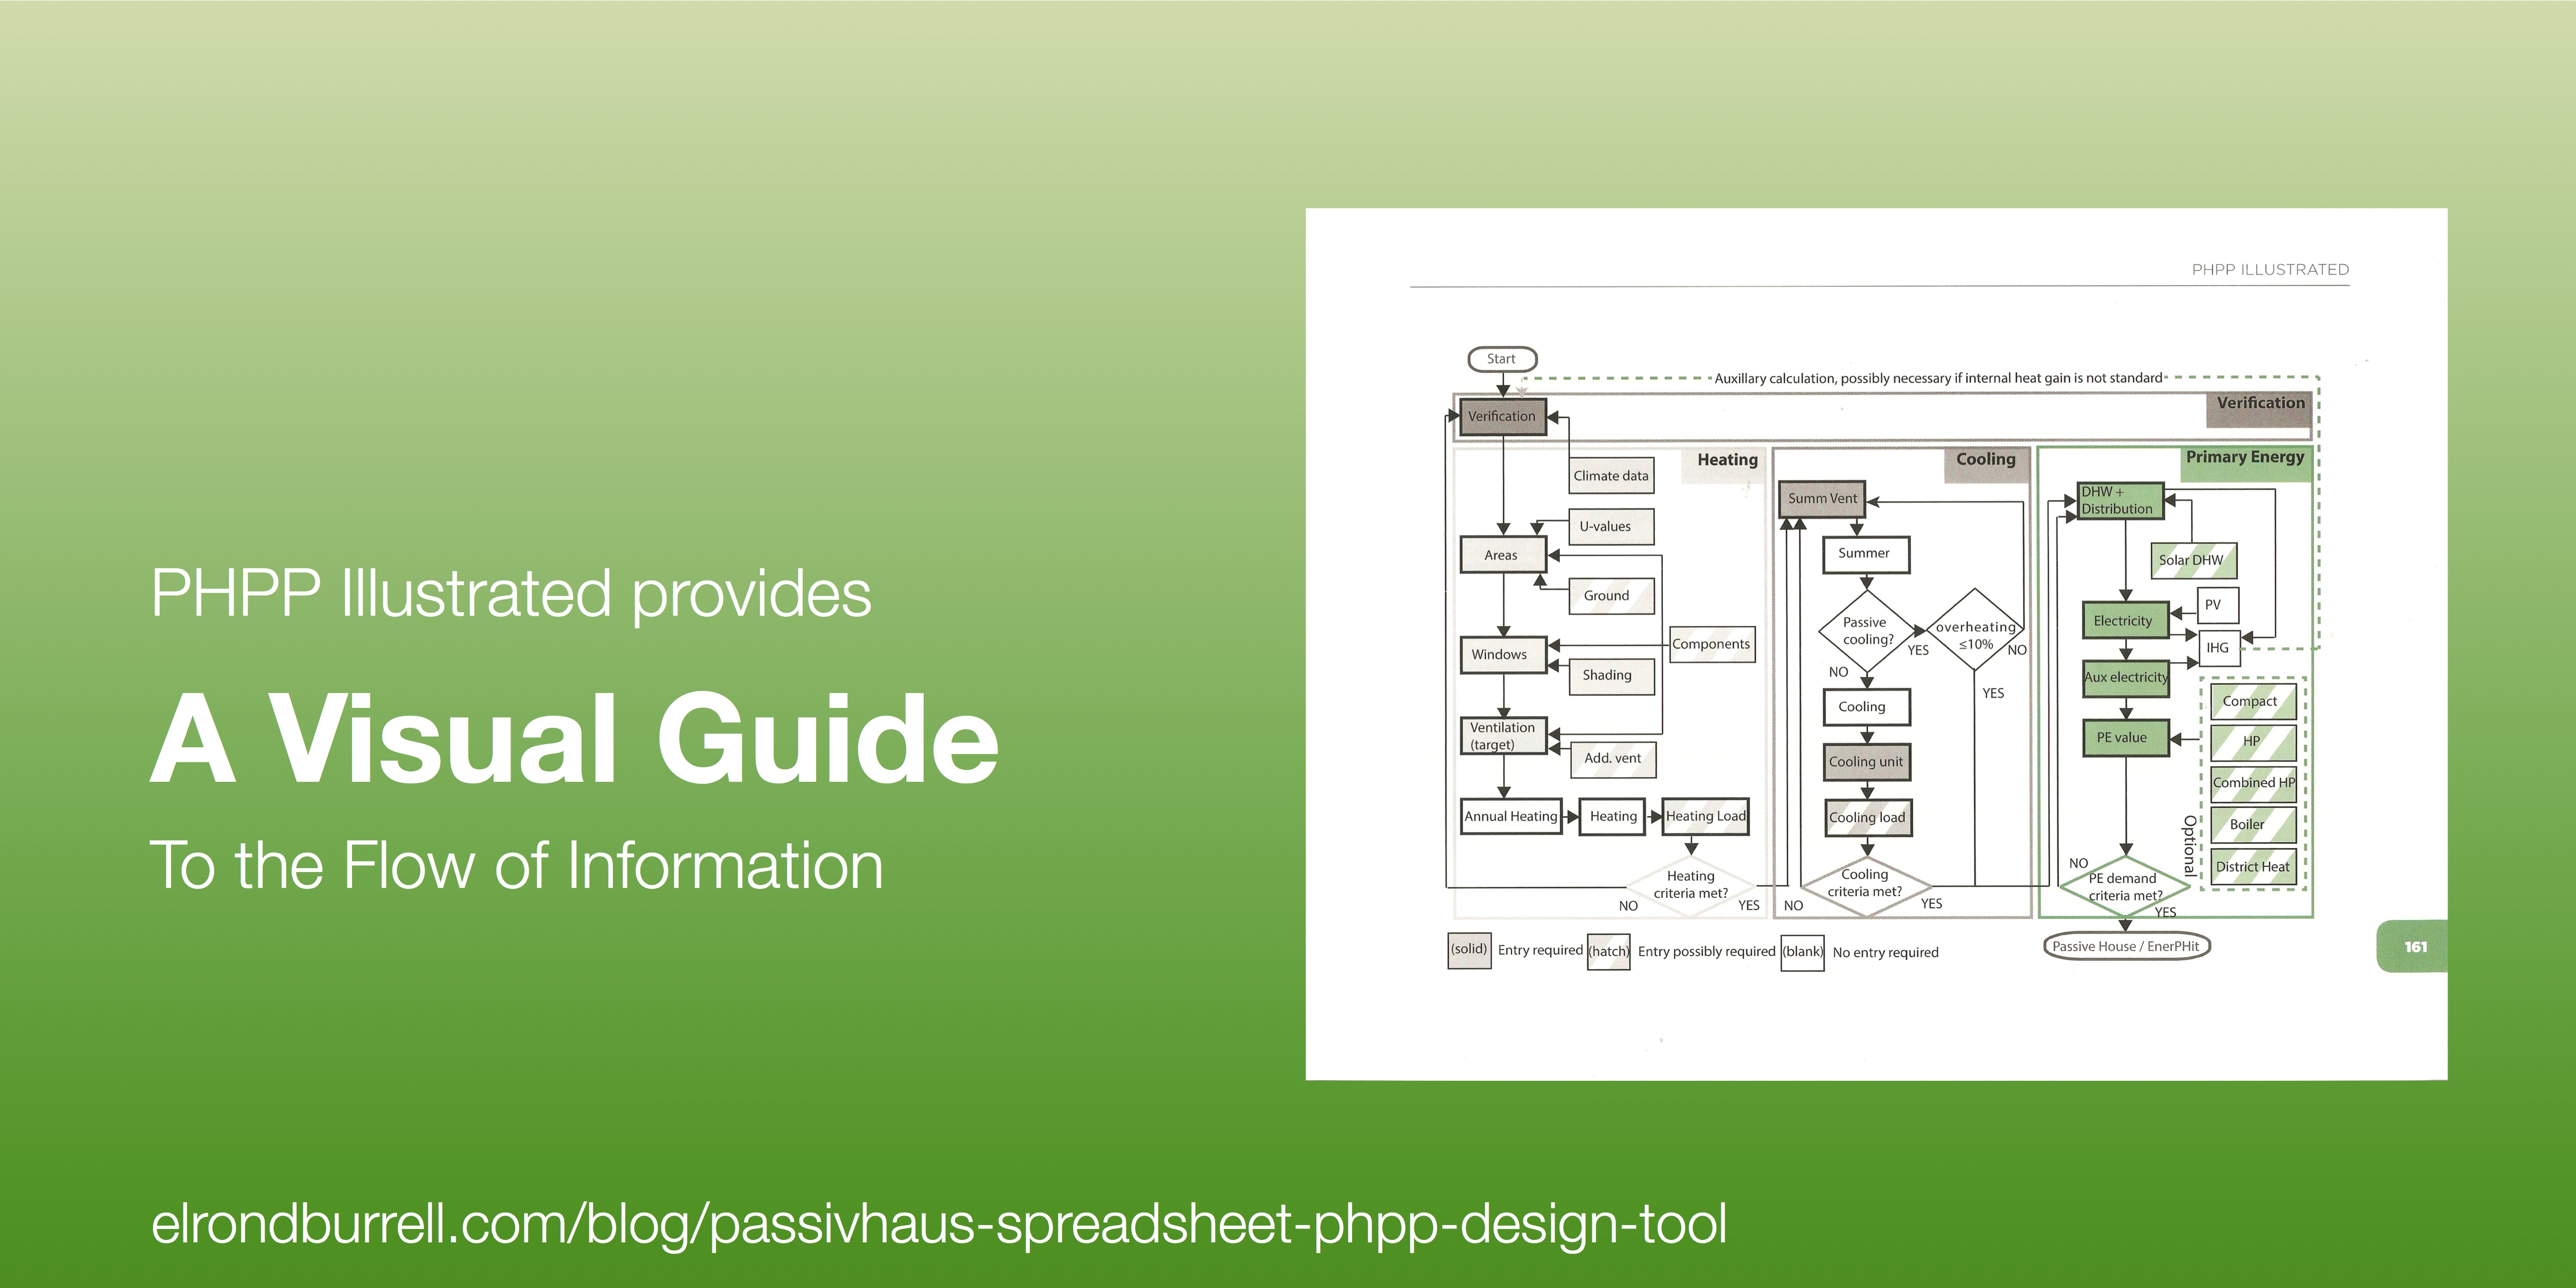 How To Use The Passivhaus Spreadsheet Phpp As A Design Tool Drawing Free Body Force Diagrams Worksheet Along With Diagram 015 Flowchart